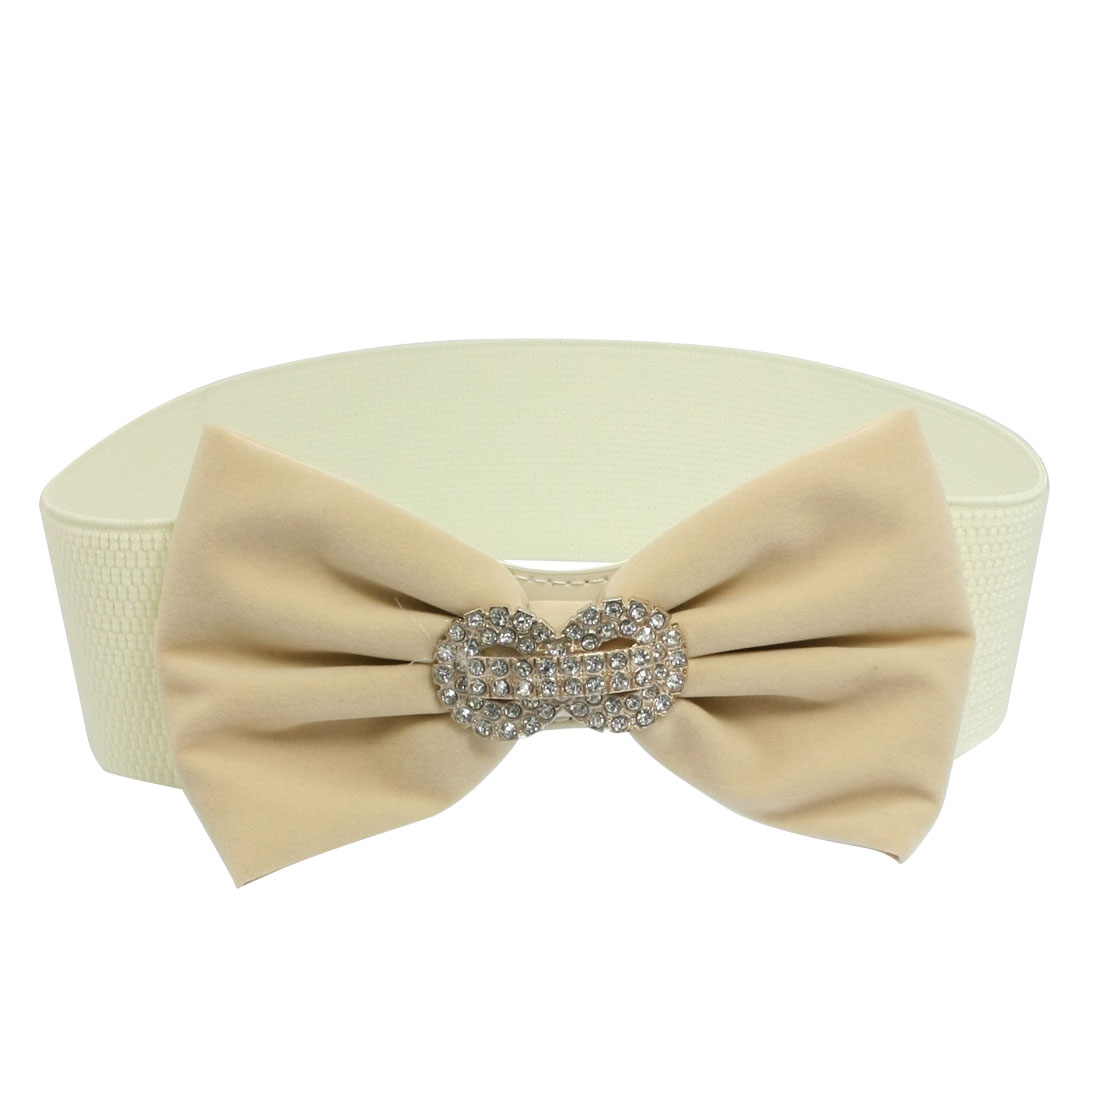 Lady Women Beige Bowknot Design Press Buckle Stretchy Waist Band Belt